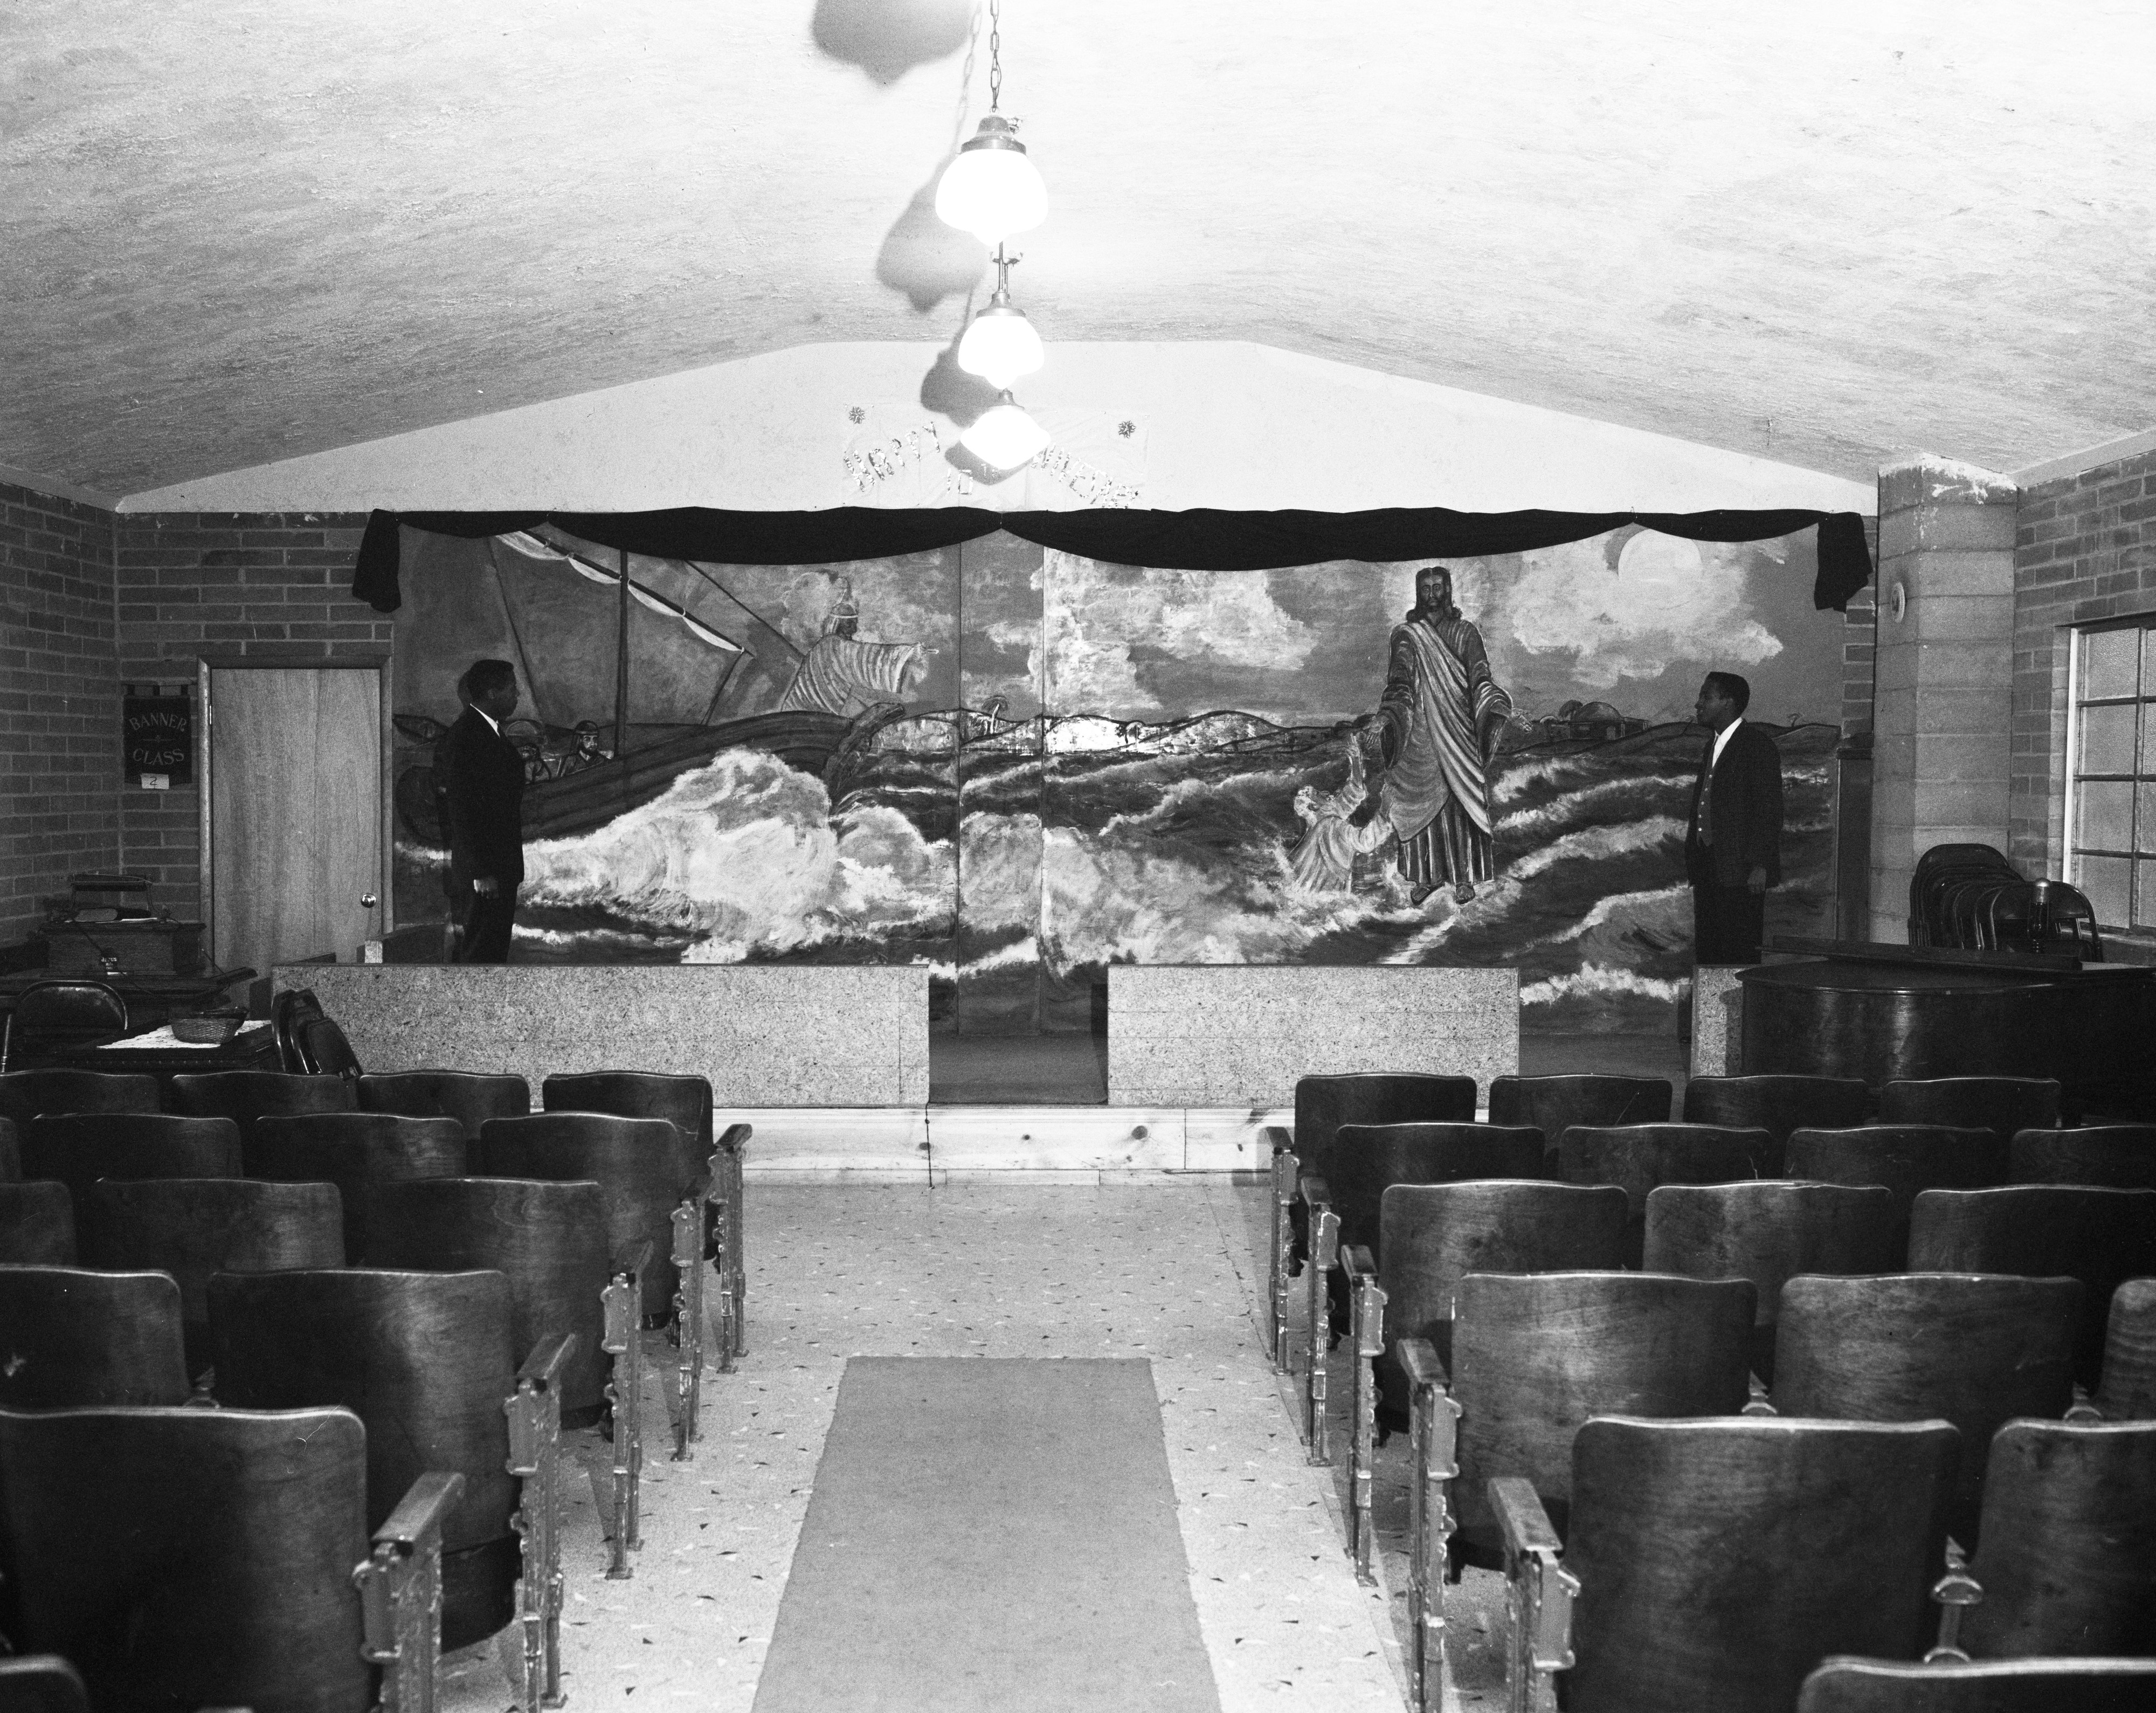 Walls Brothers Look at Mural They Painted at Shiloh Church of God in Christ, November 1961 image